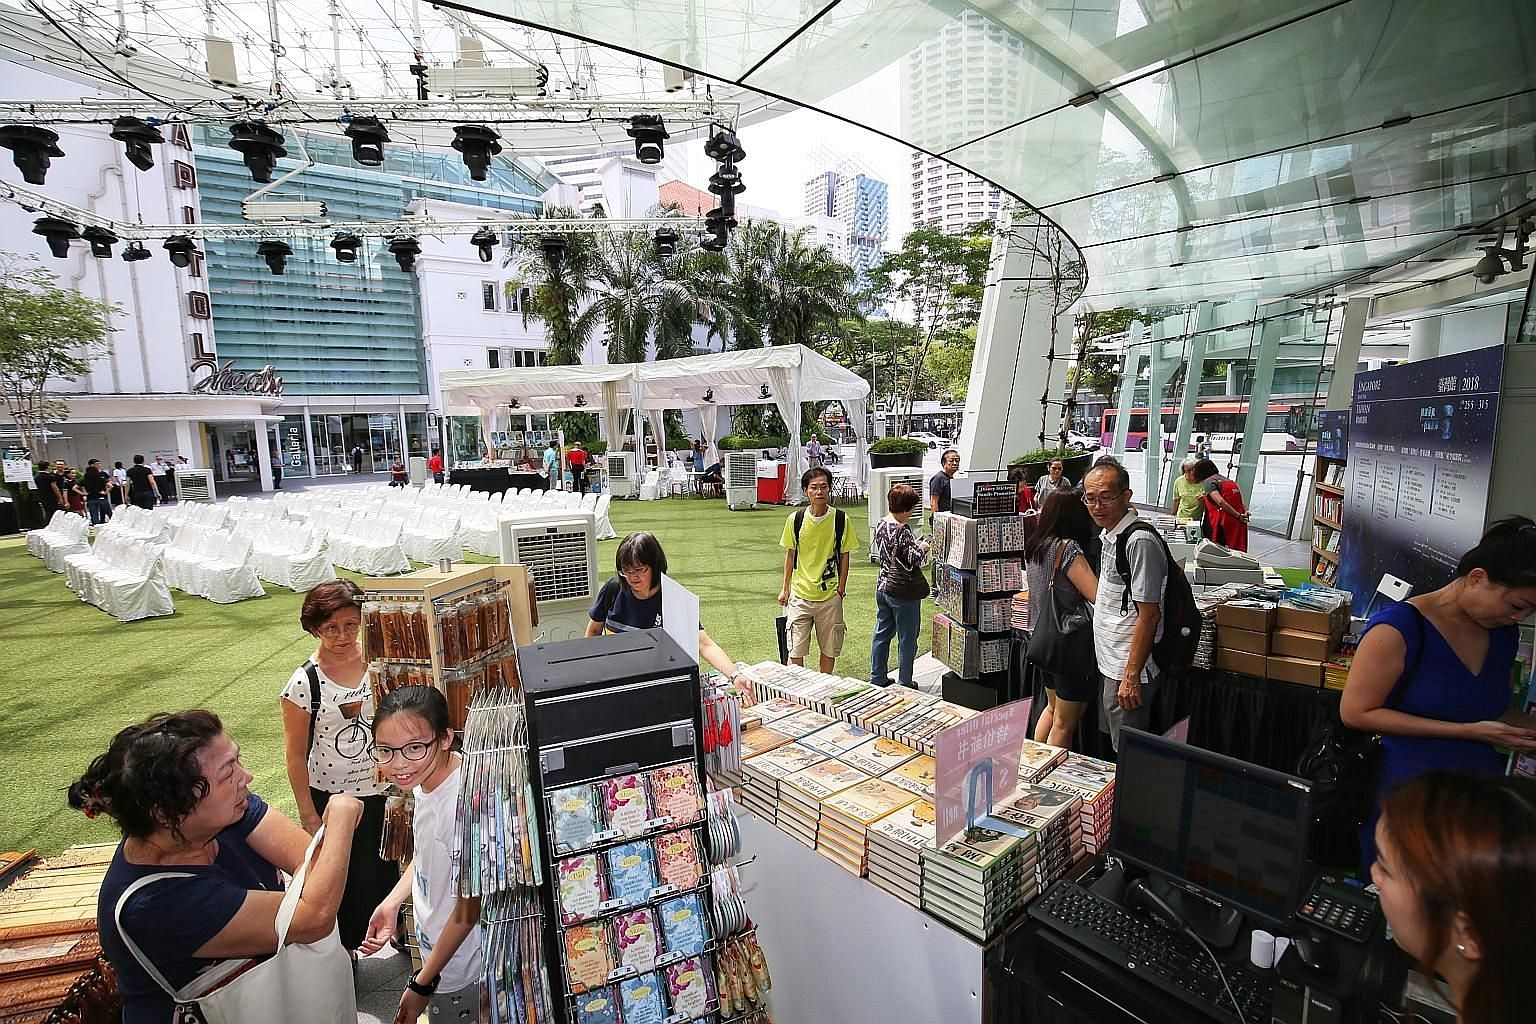 Last year's Singapore Book Fair held at Capitol Singapore. This year's edition will run from May 31 to June 9.